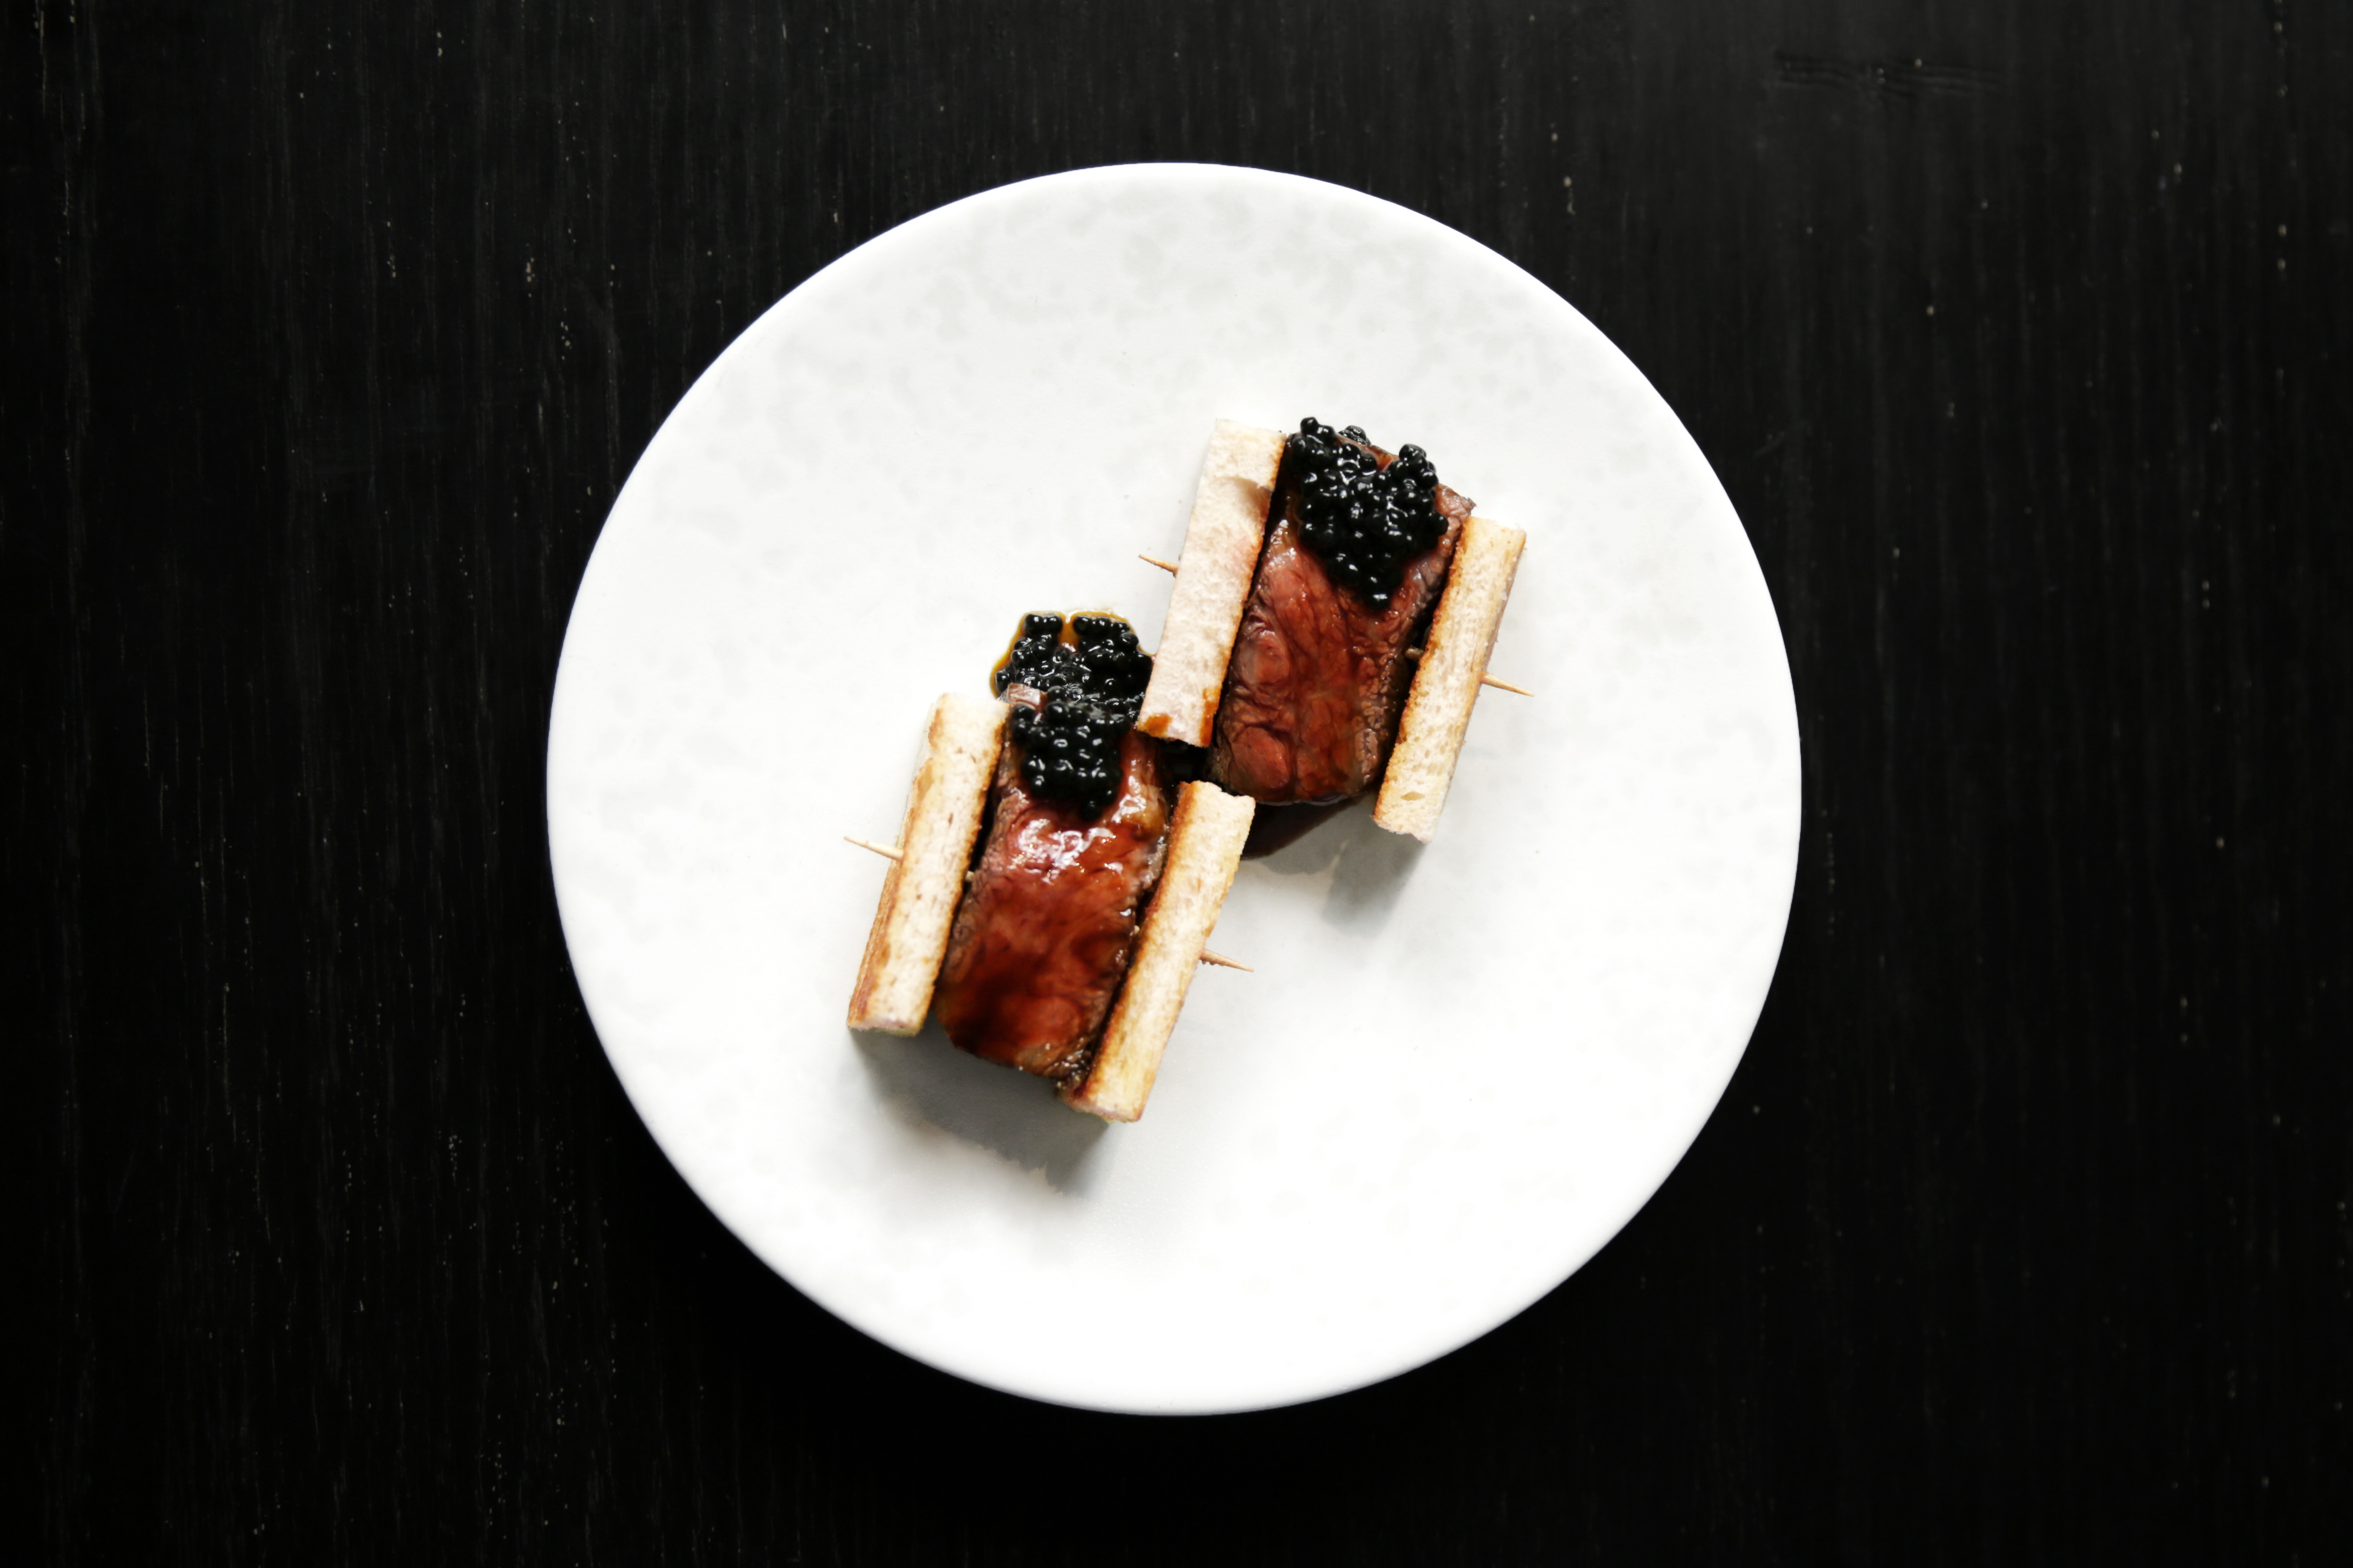 ET Snack Bar at Back Bar, Ham and Sherry. Wagyu Beef Sandwiches, Truffle Pearls.